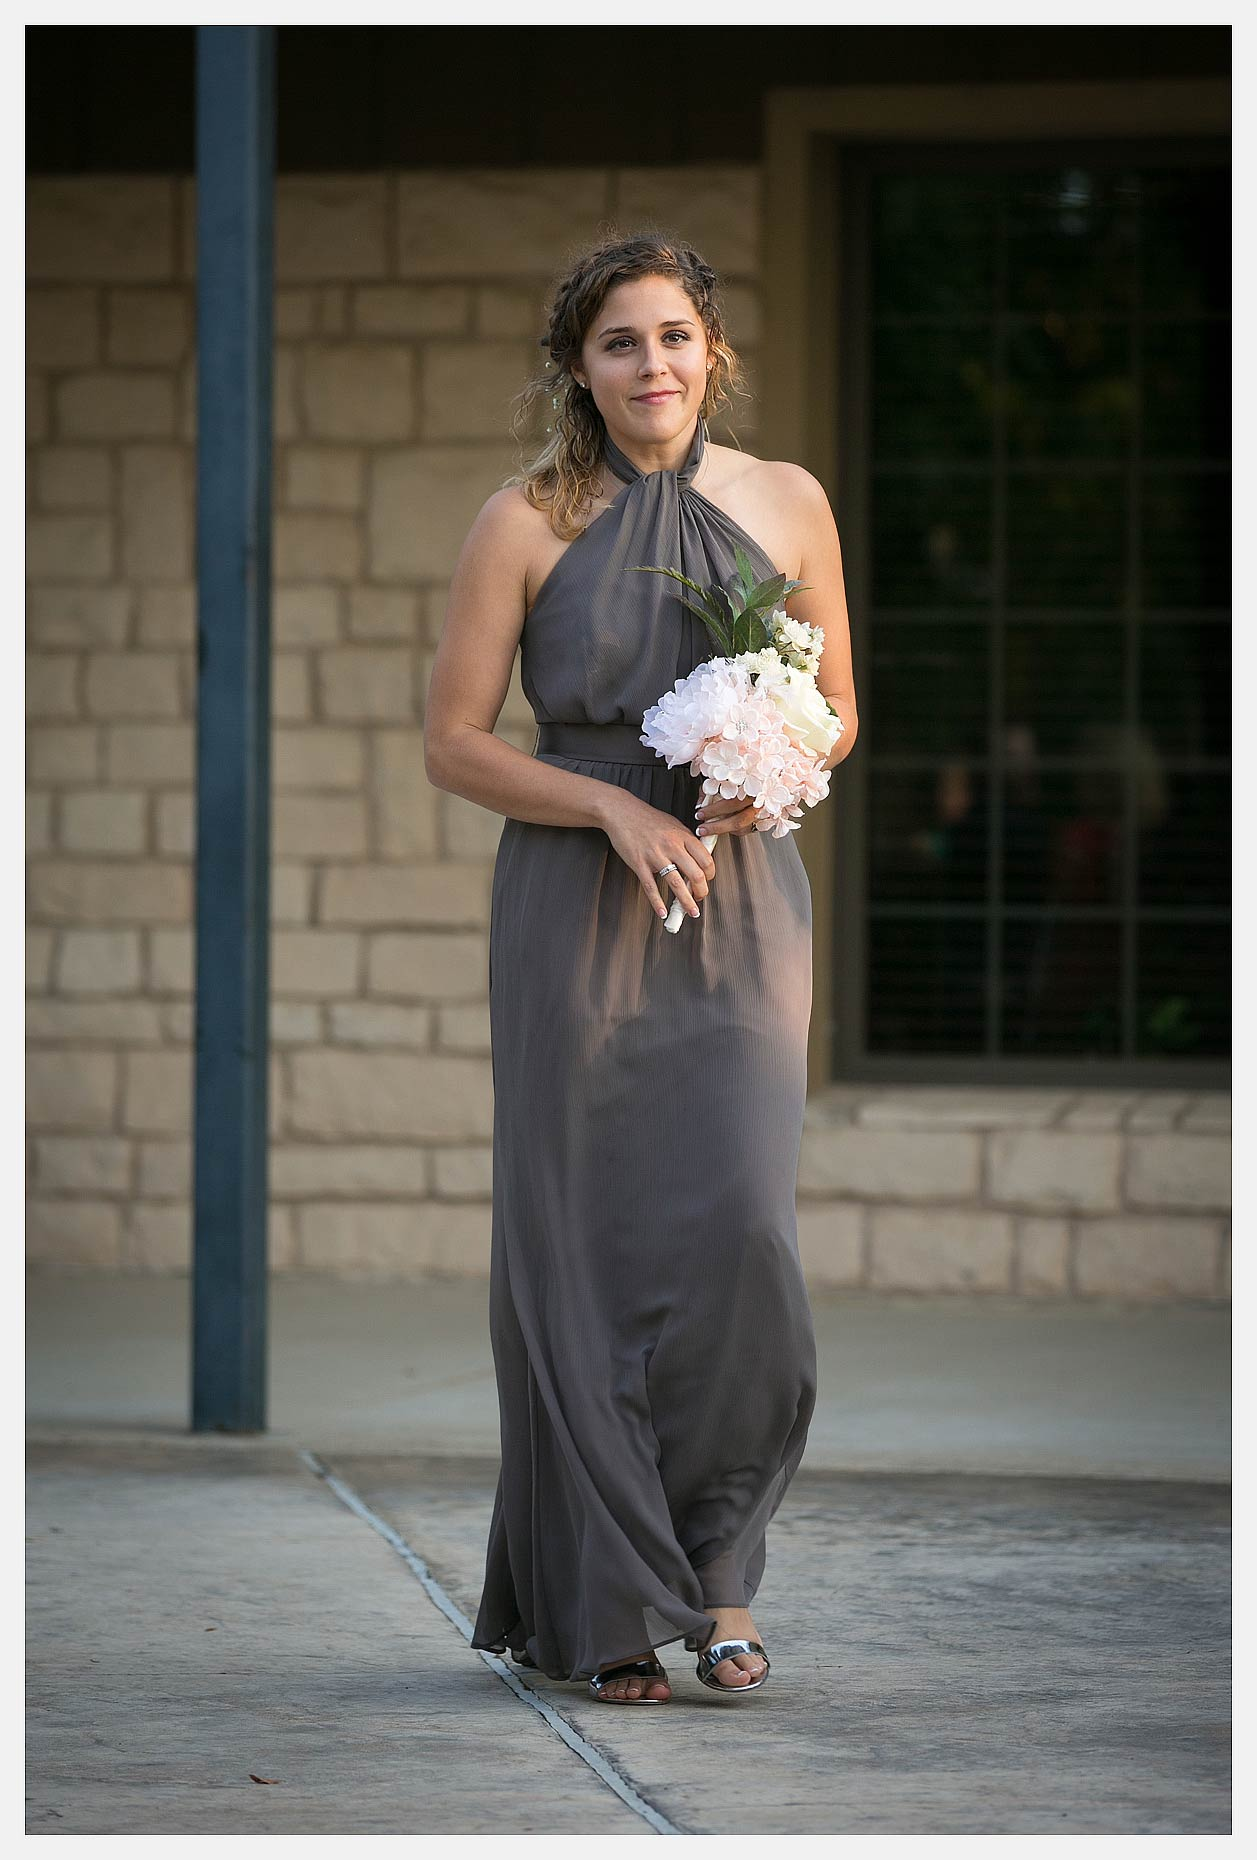 Madison-Carver-Wedding-by-Stephen-Masker-Photography-0066